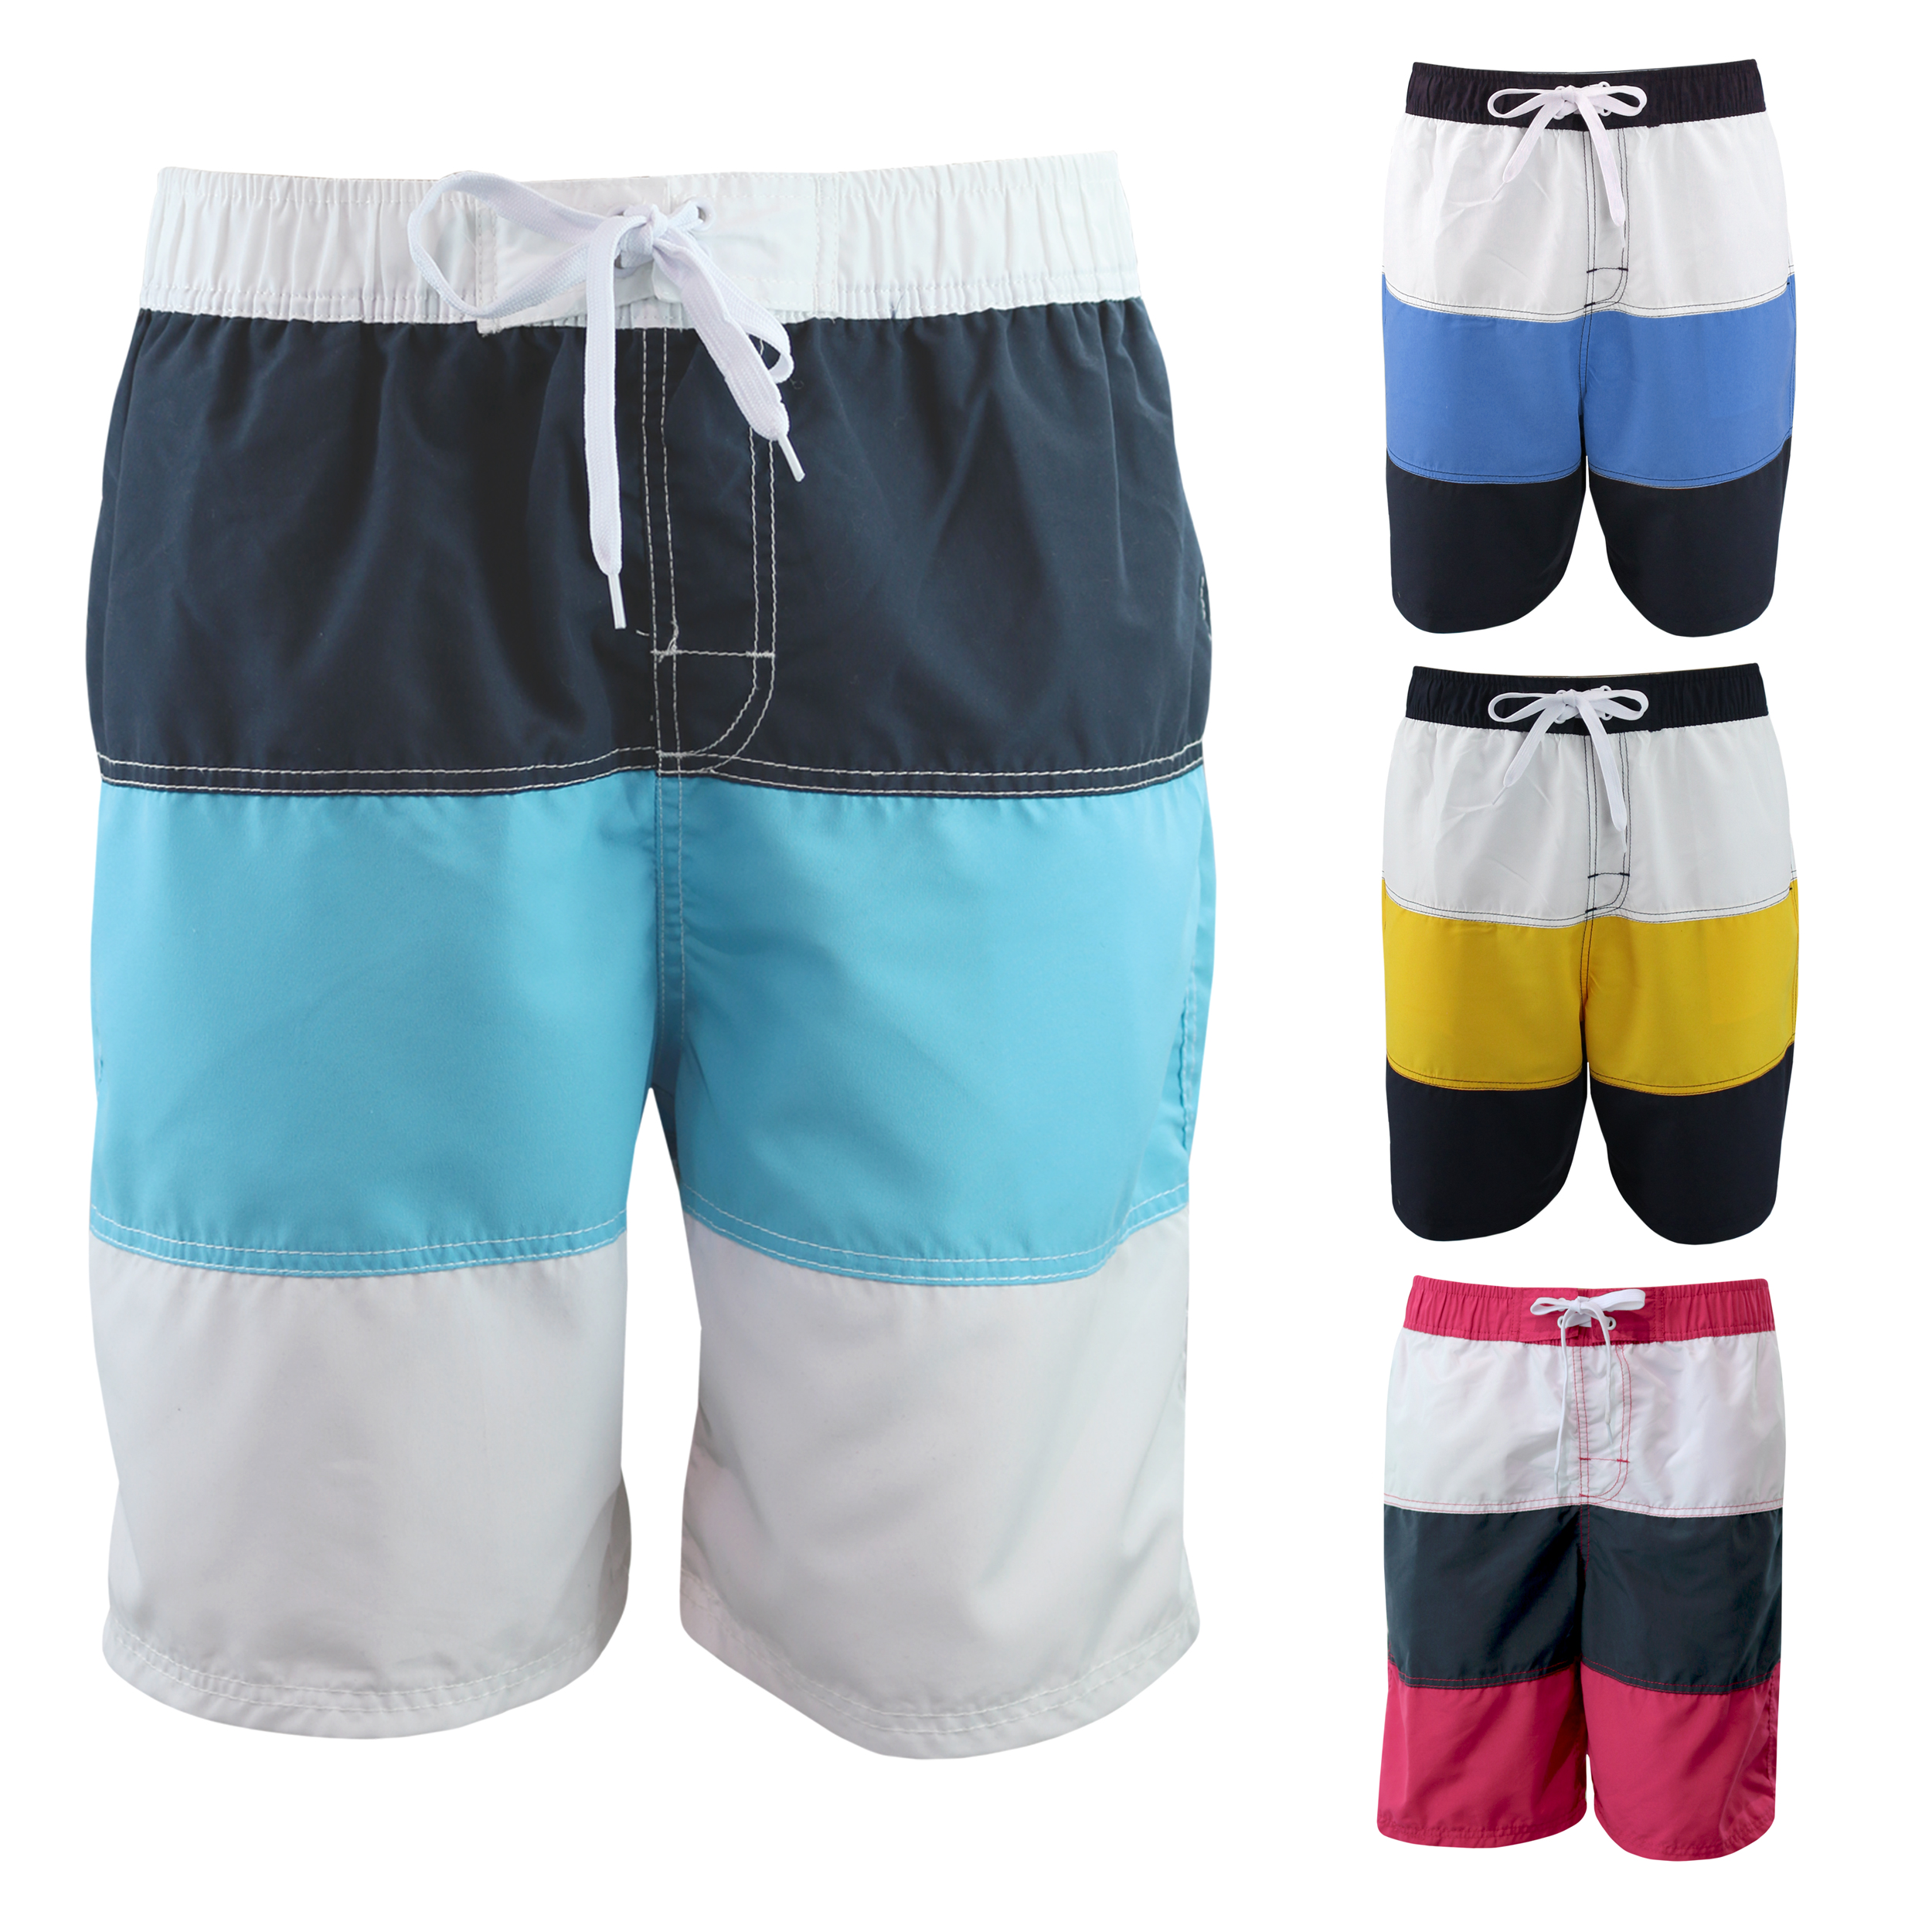 88d7ef51ad Details about CARGO BAY Mens Swimming Board Shorts Swim Trunks Beach  Holiday Swimwear Summer